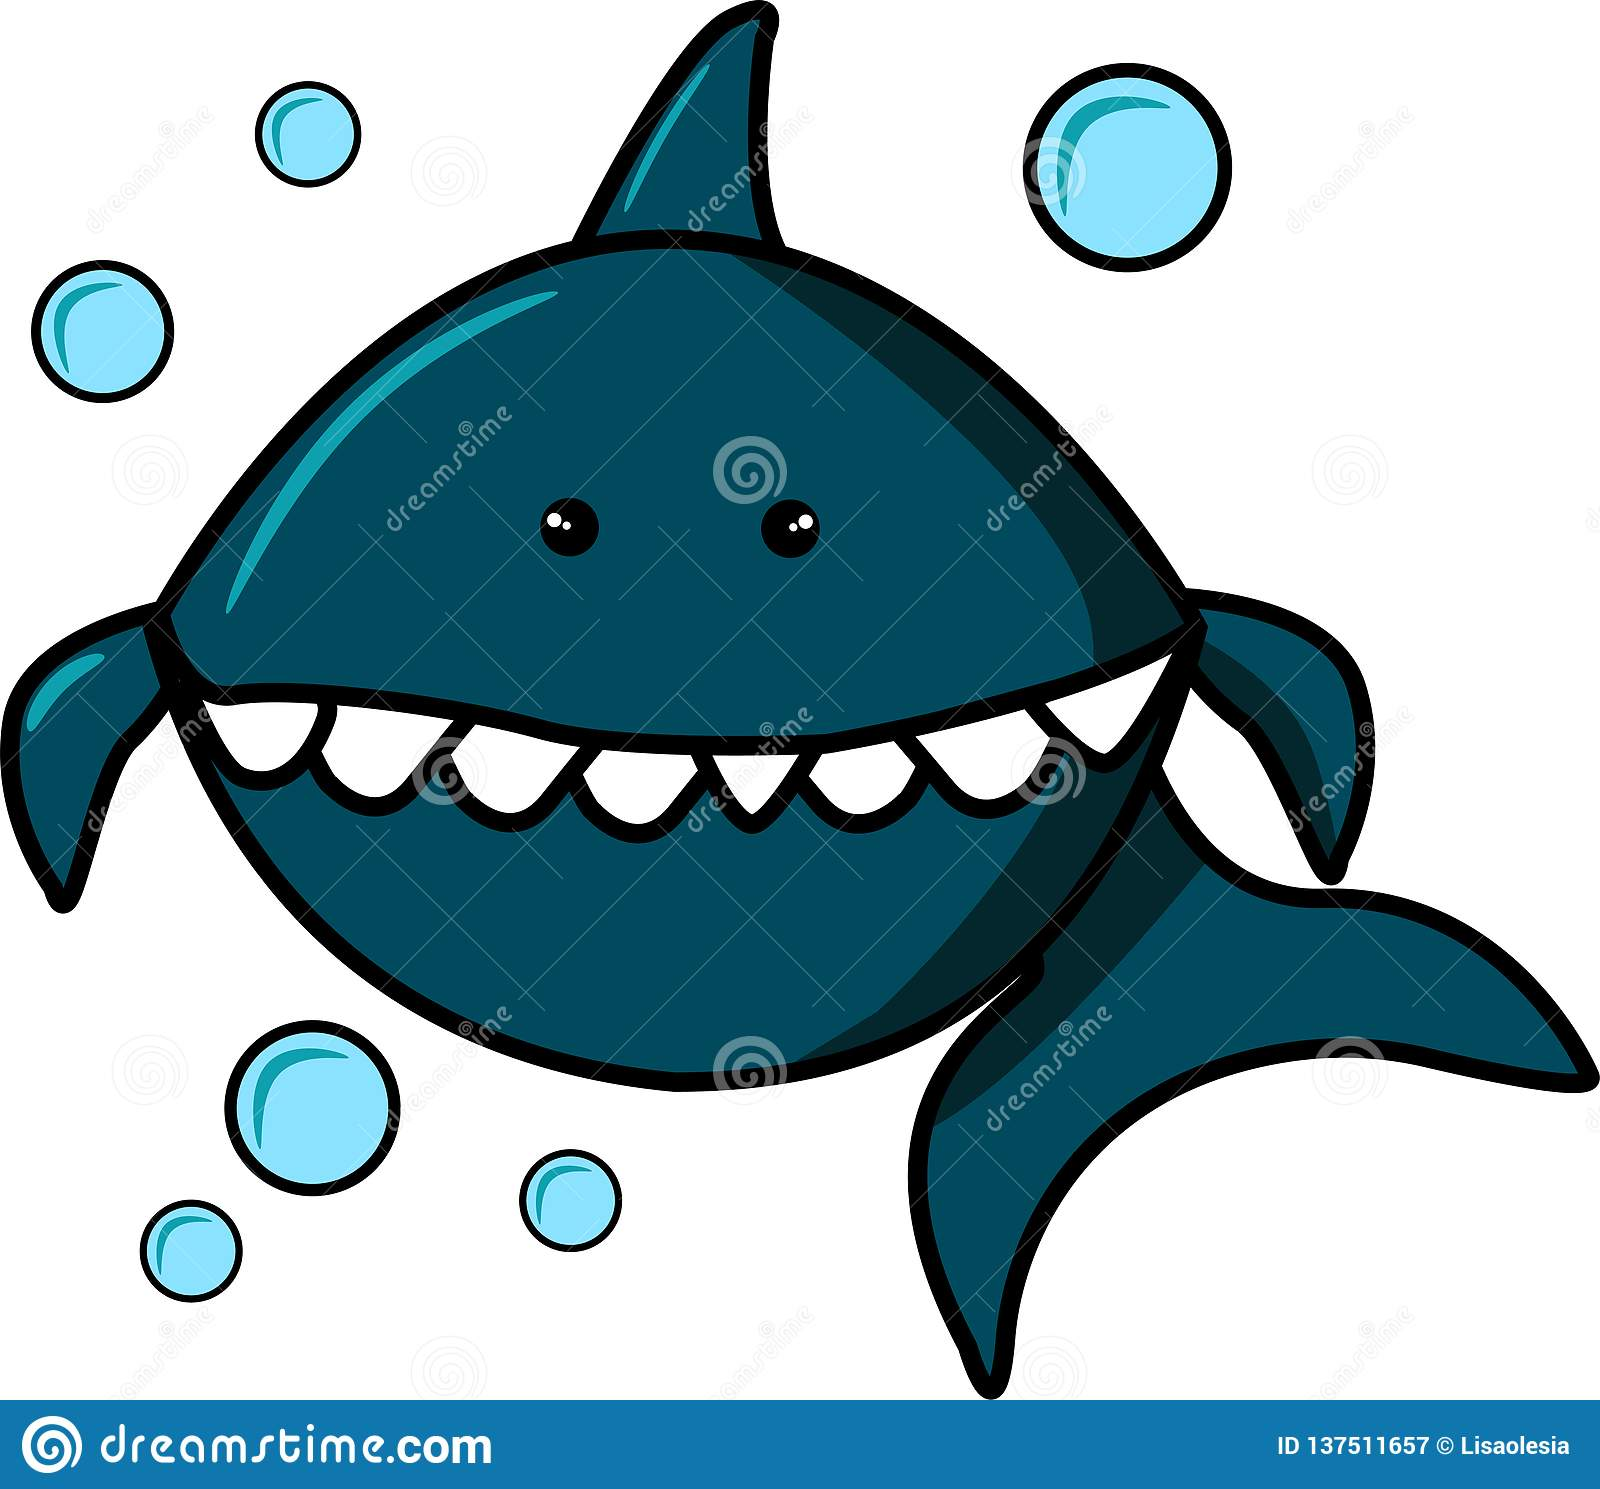 Blue Shark and Bubbles on white background. Cartoon character for print on t-shirts, sweatshirts, T-shirts, gifts